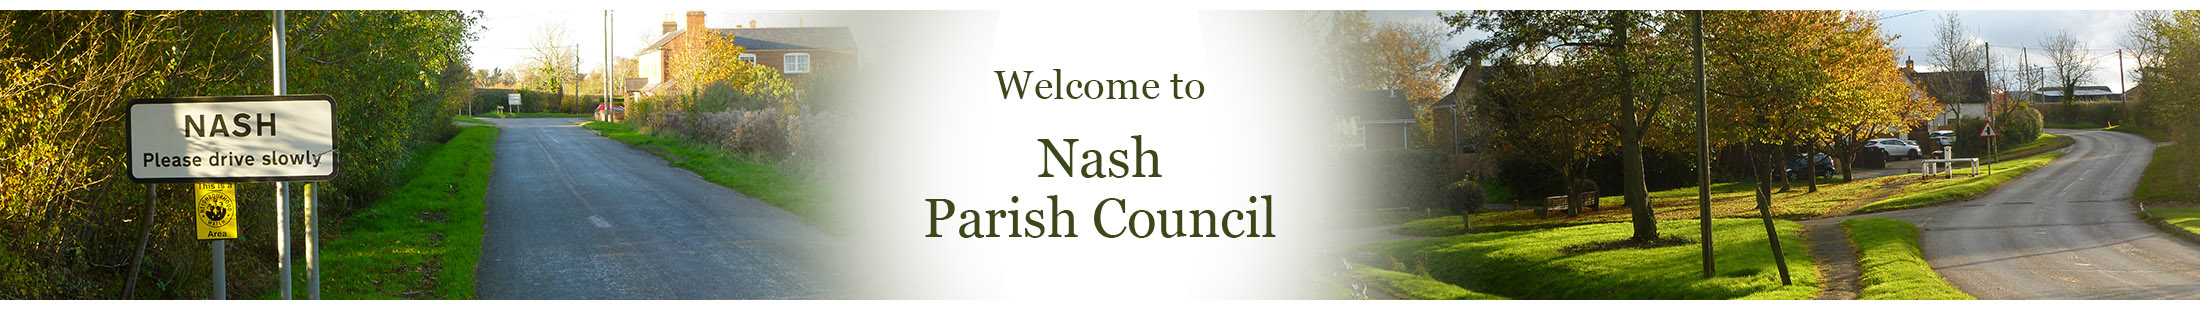 Header Image for Nash Parish Council